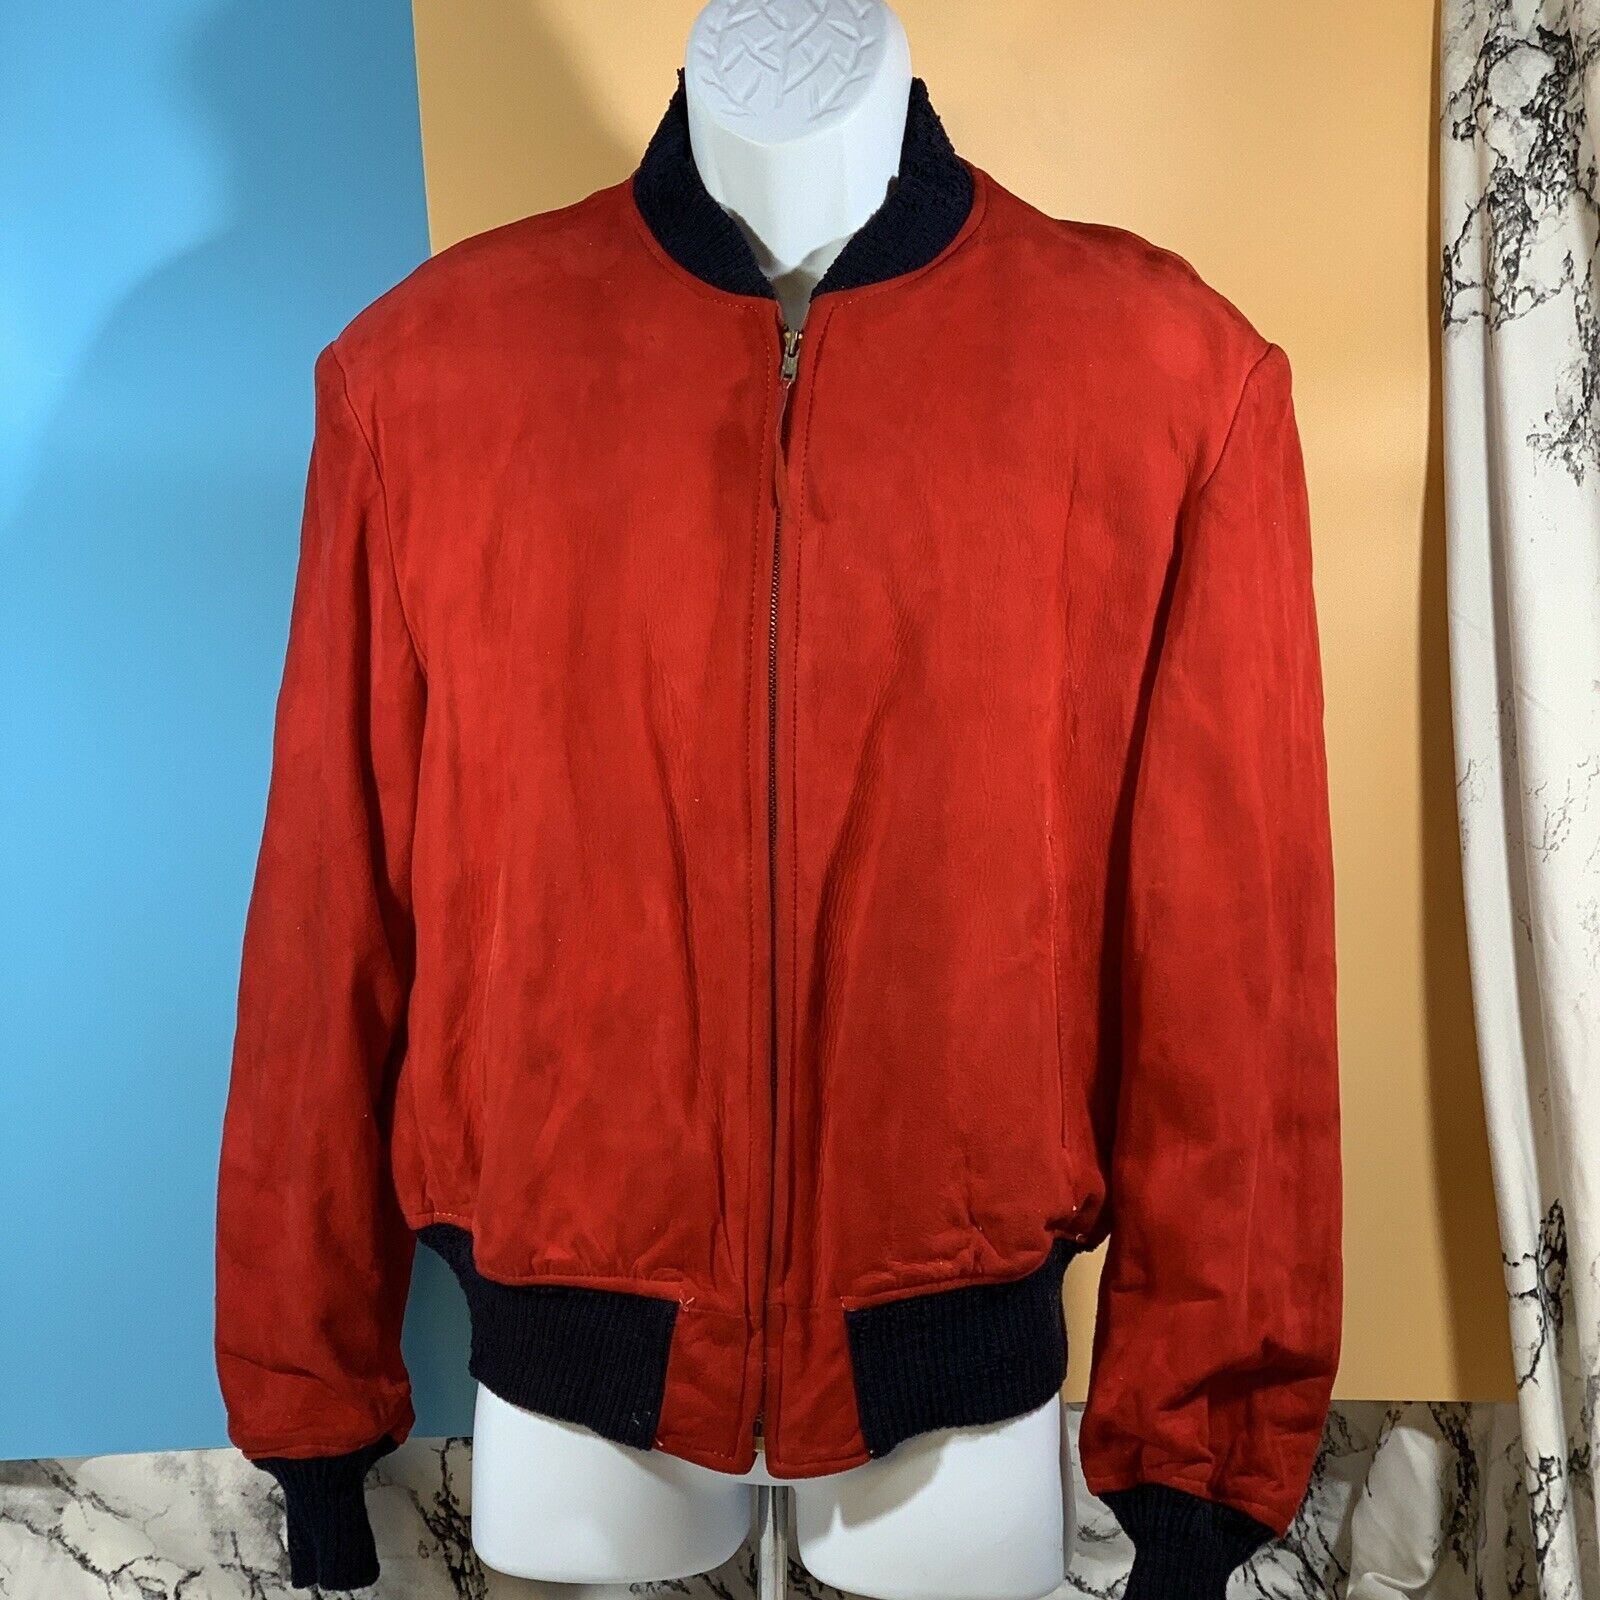 Primary image for Vintage McGregor Drizzle Suede Coat Red Size 42 Imported Skins